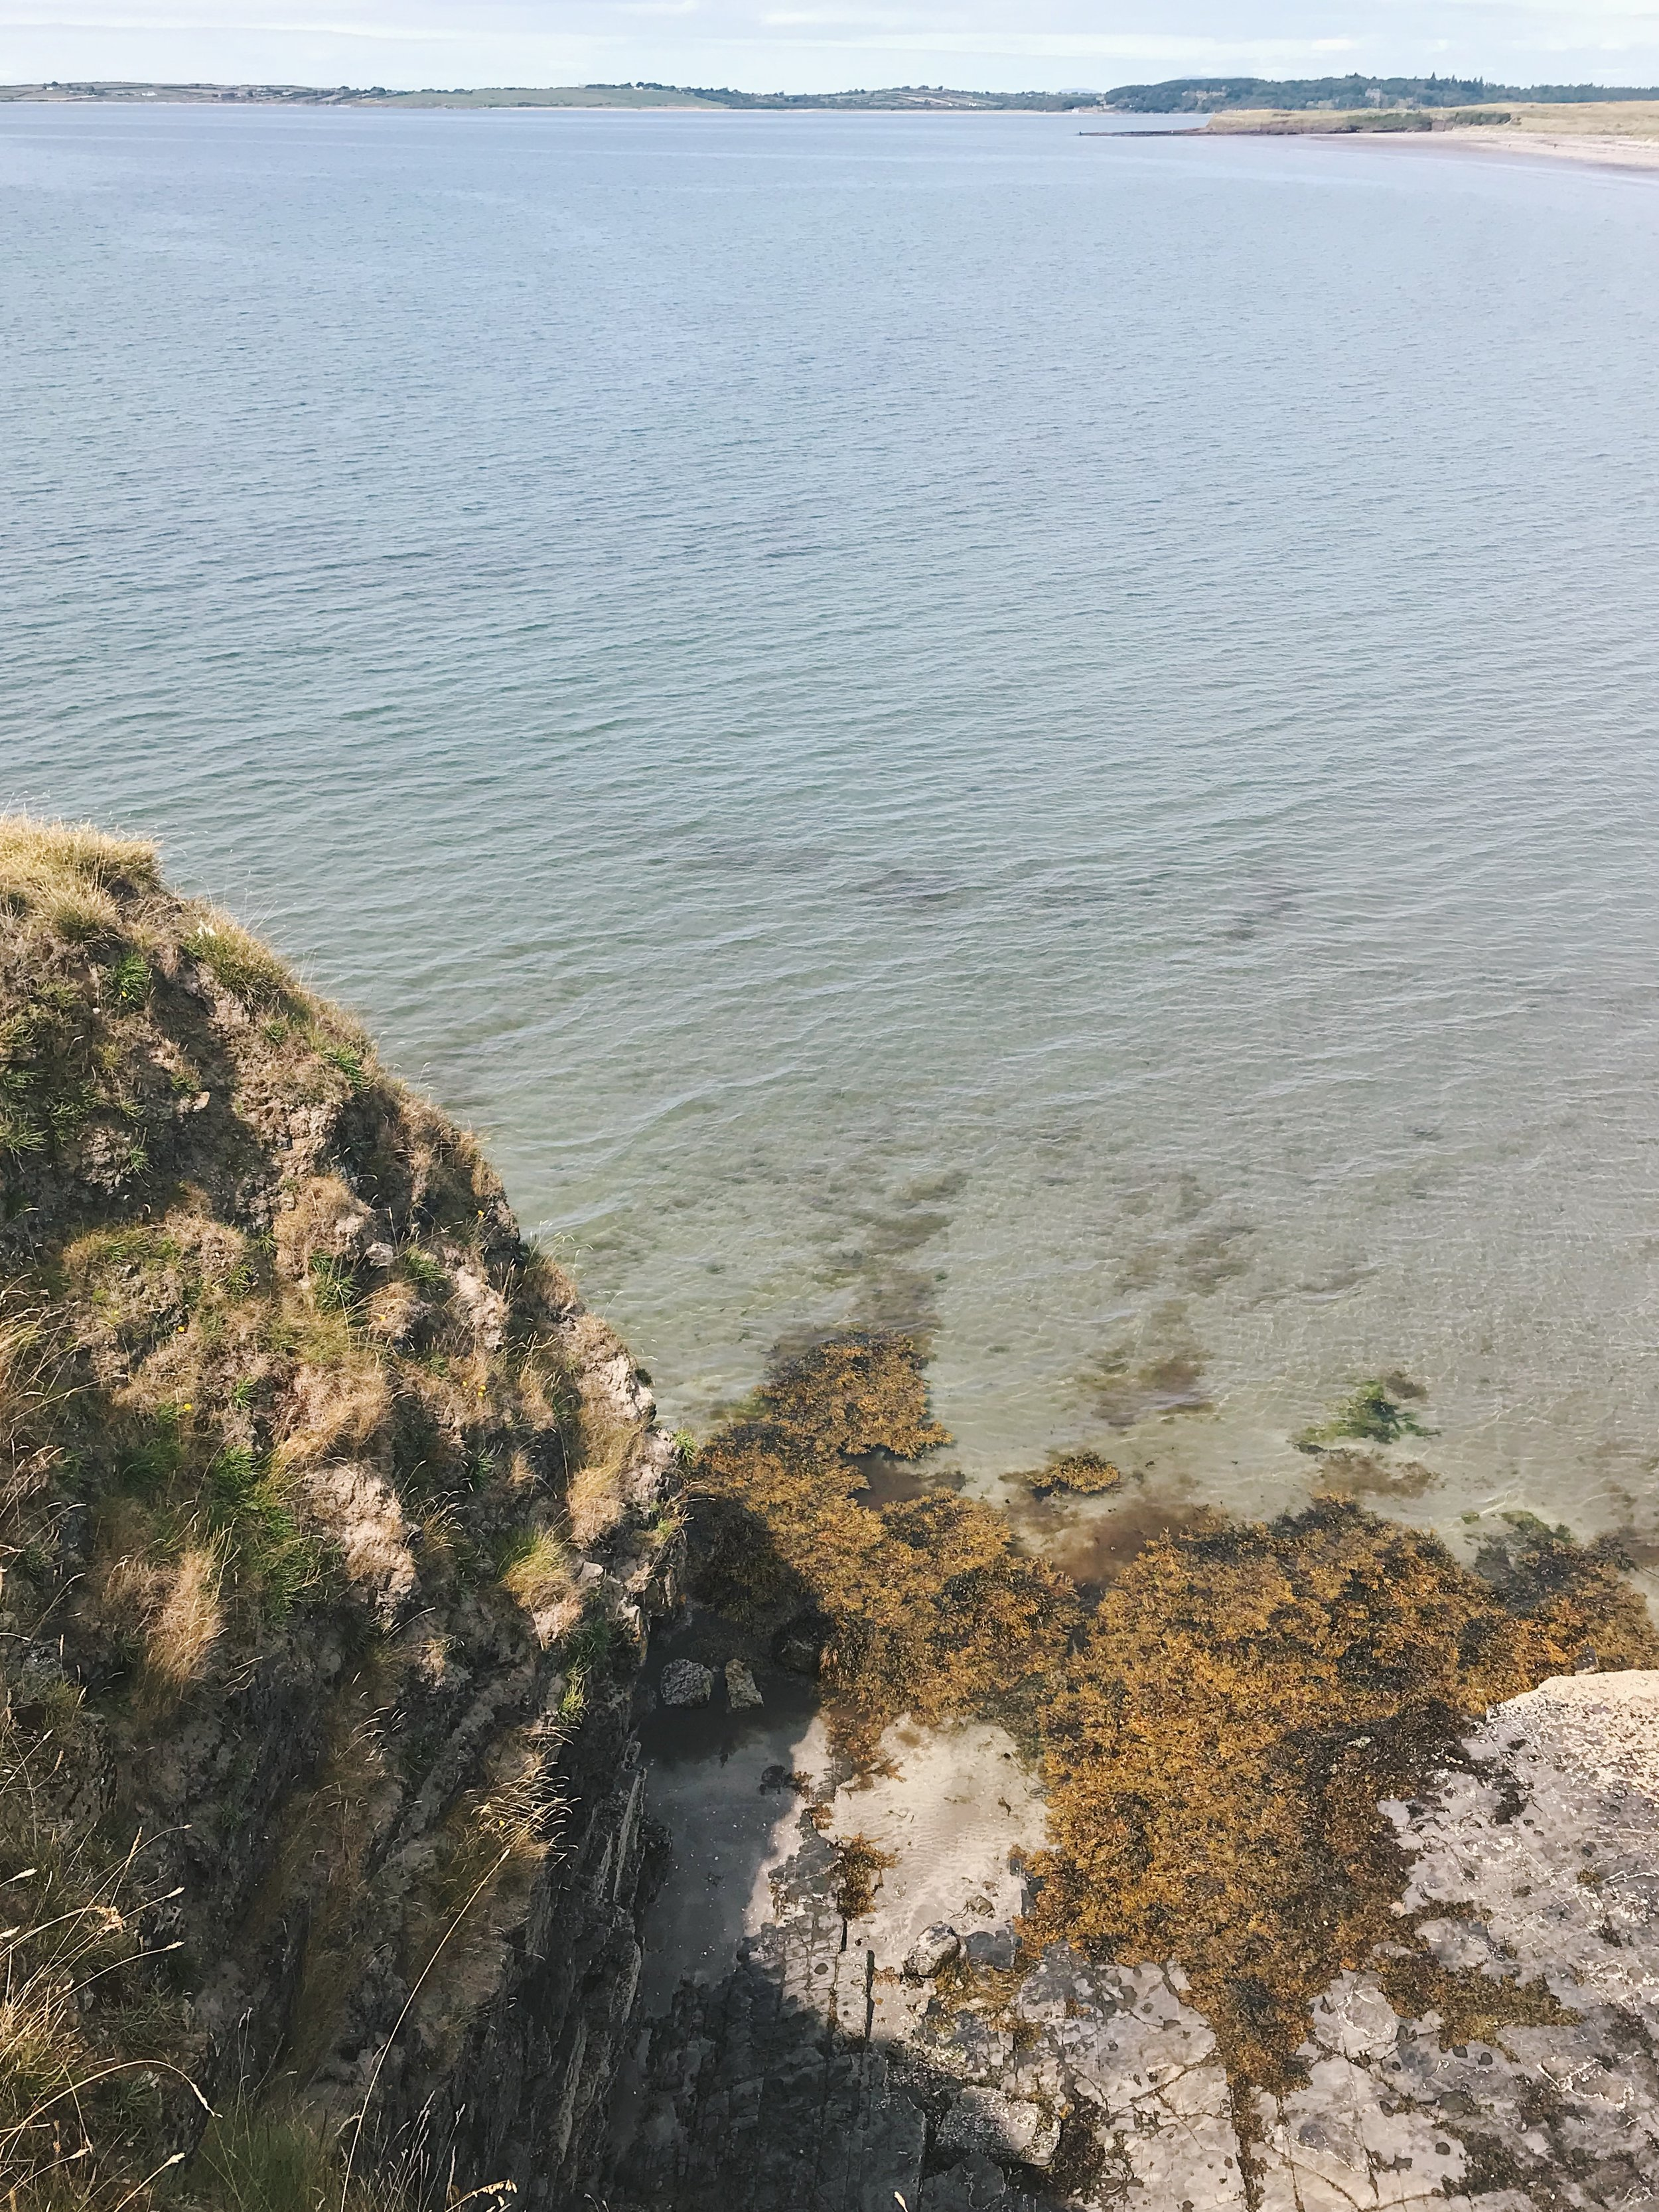 I swam in this water - beautiful Rosses Point